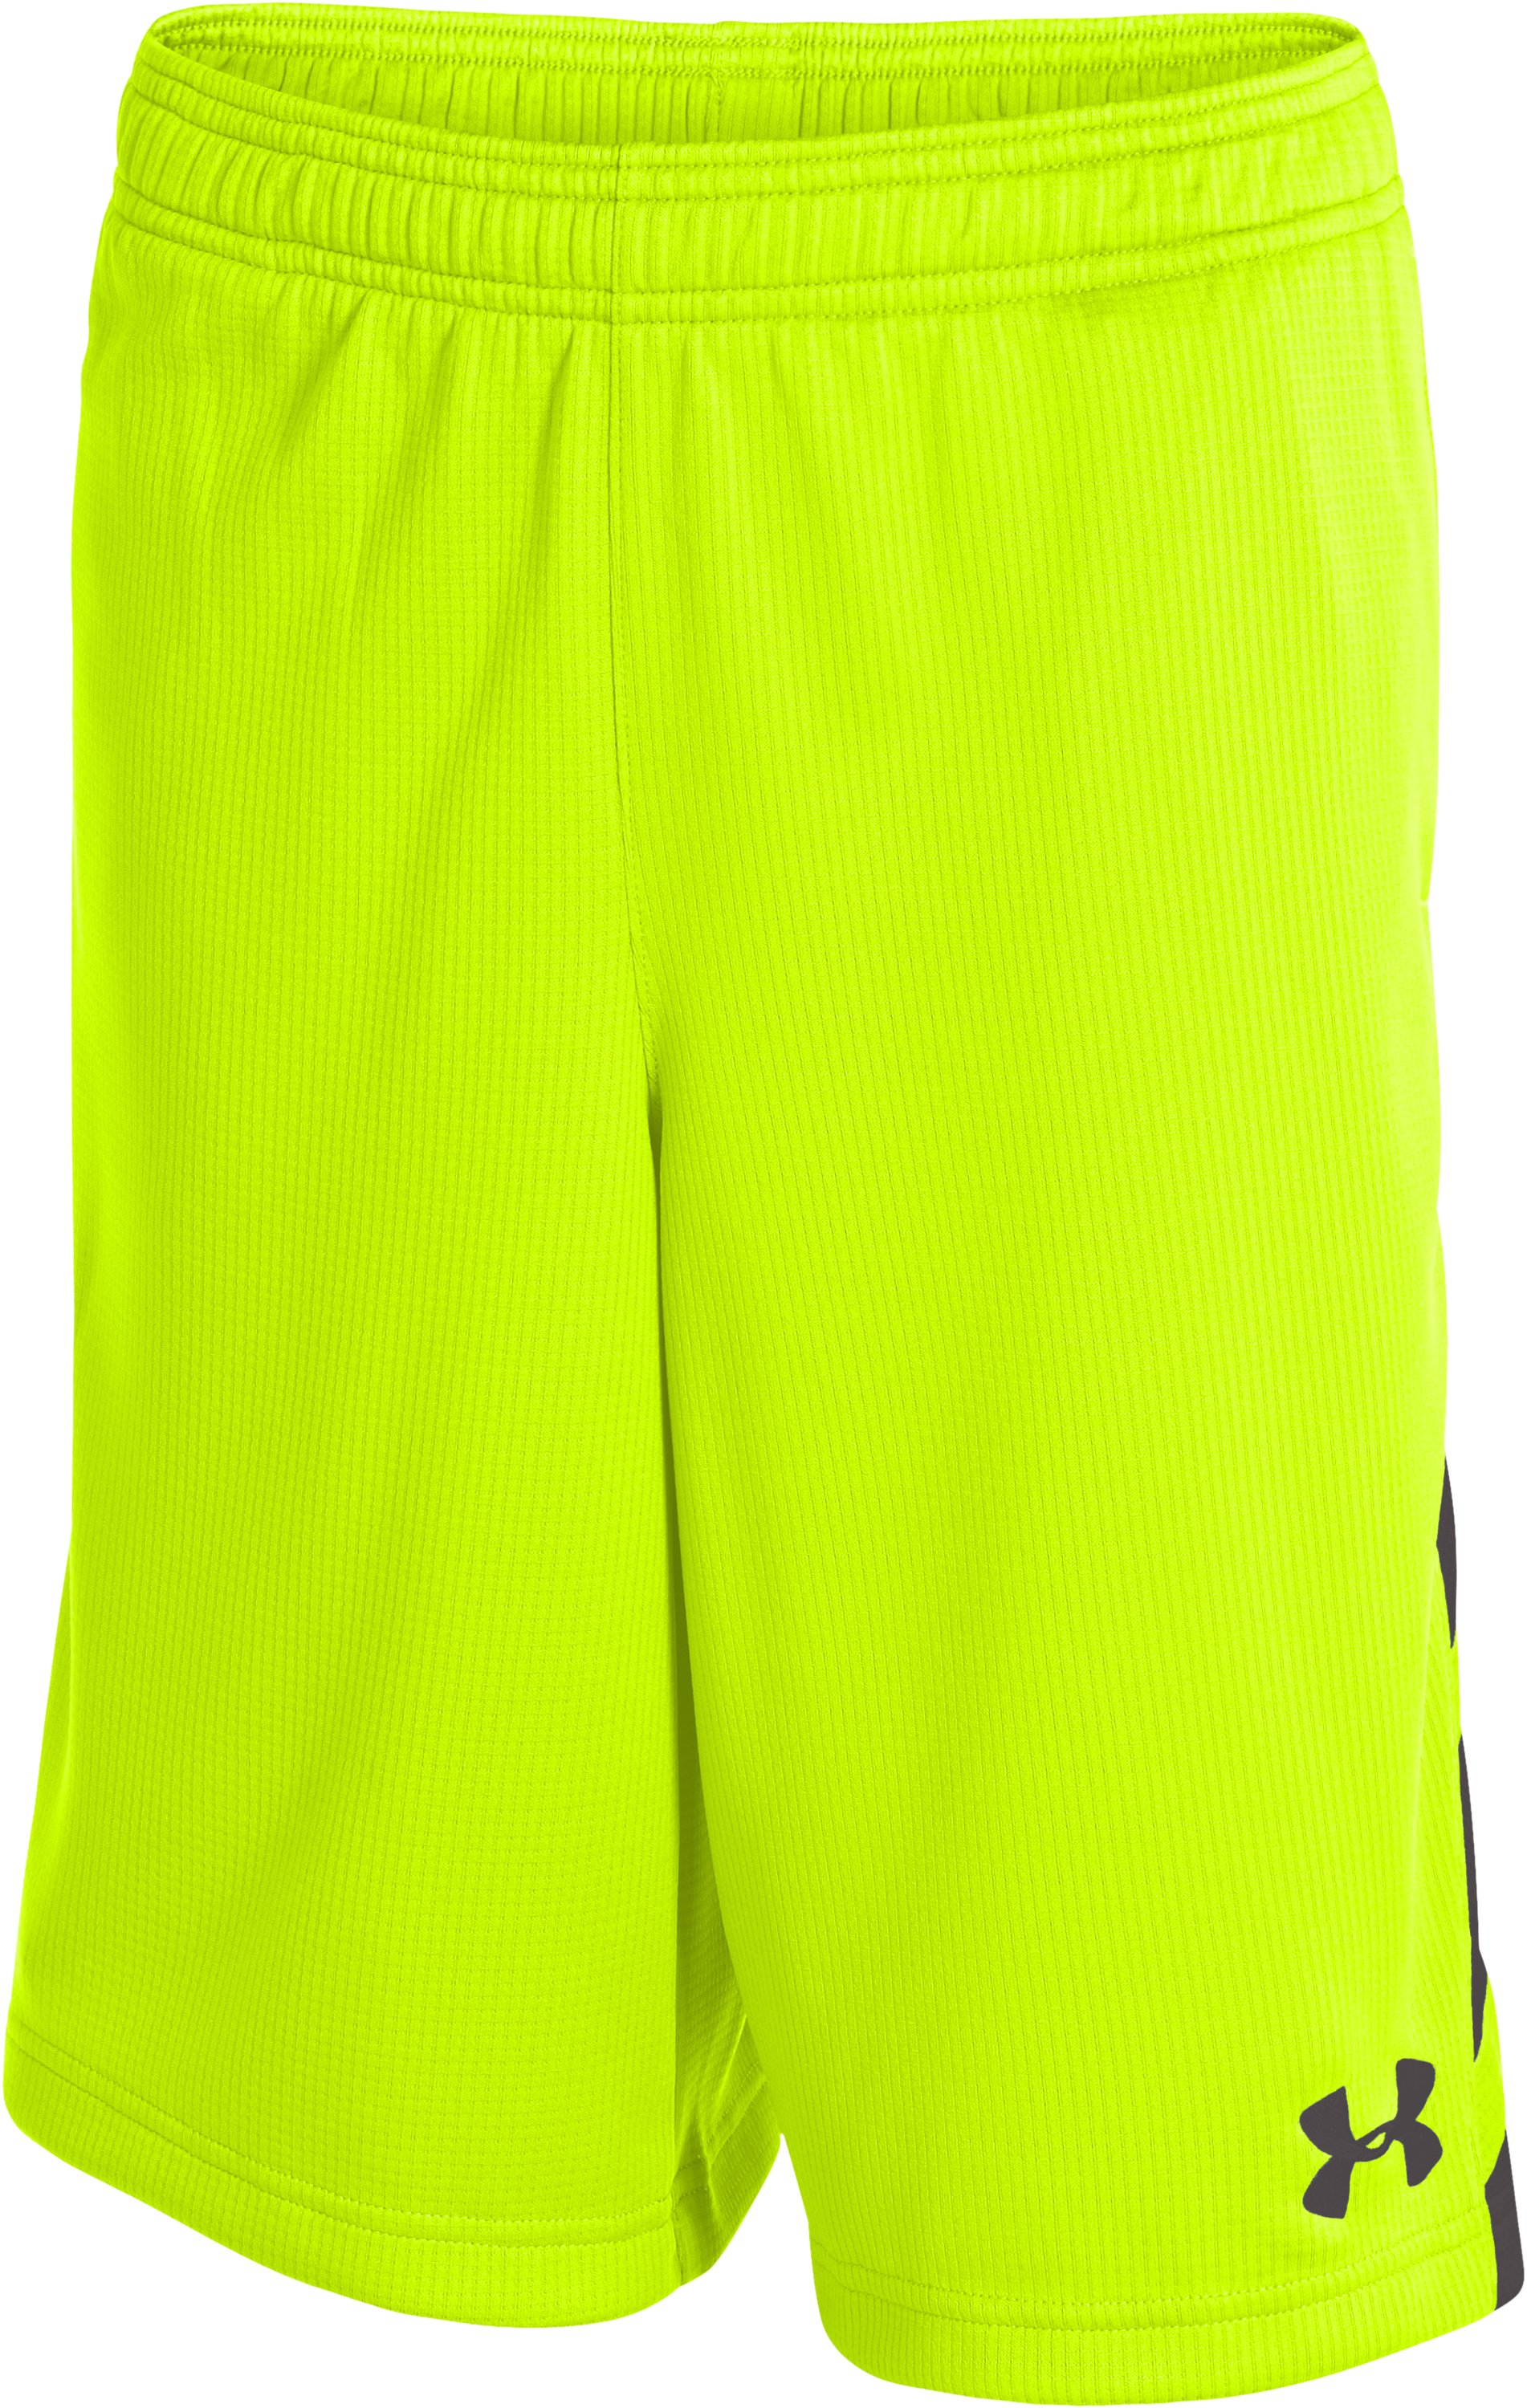 Boys' UA Big Timin Shorts, High-Vis Yellow, zoomed image